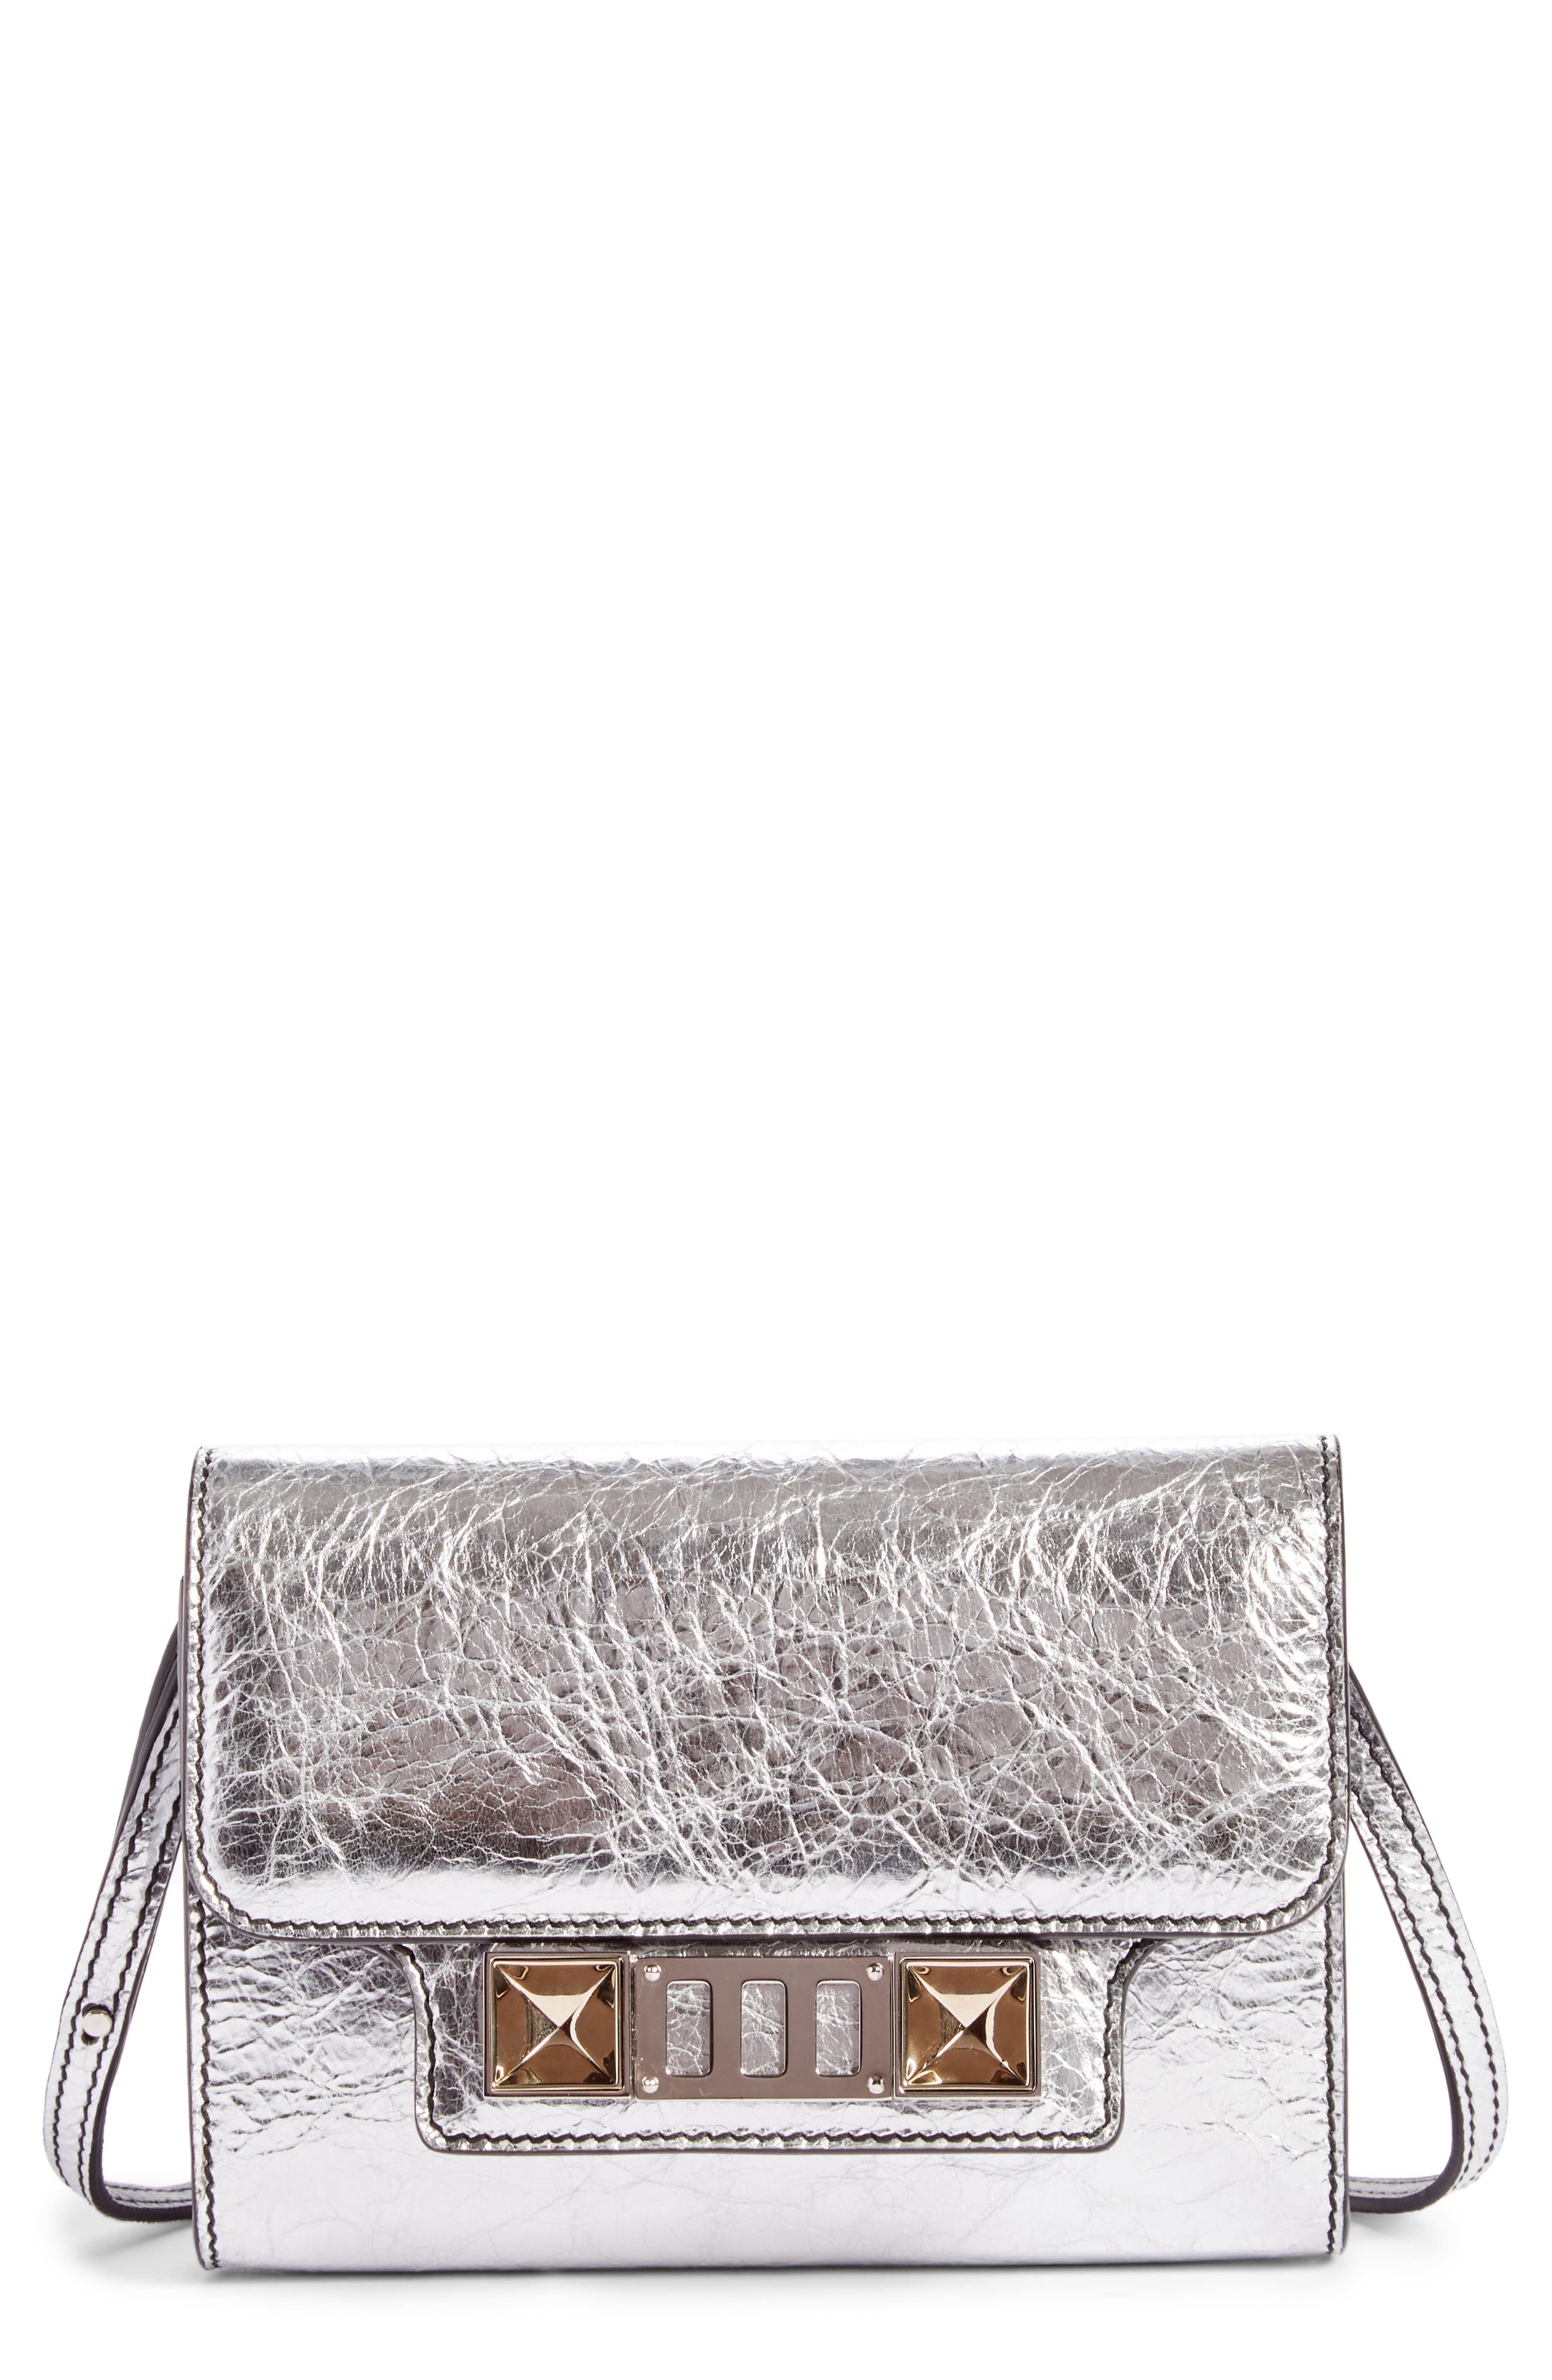 Proenza Schouler PS11 Leather Crossbody Wallet